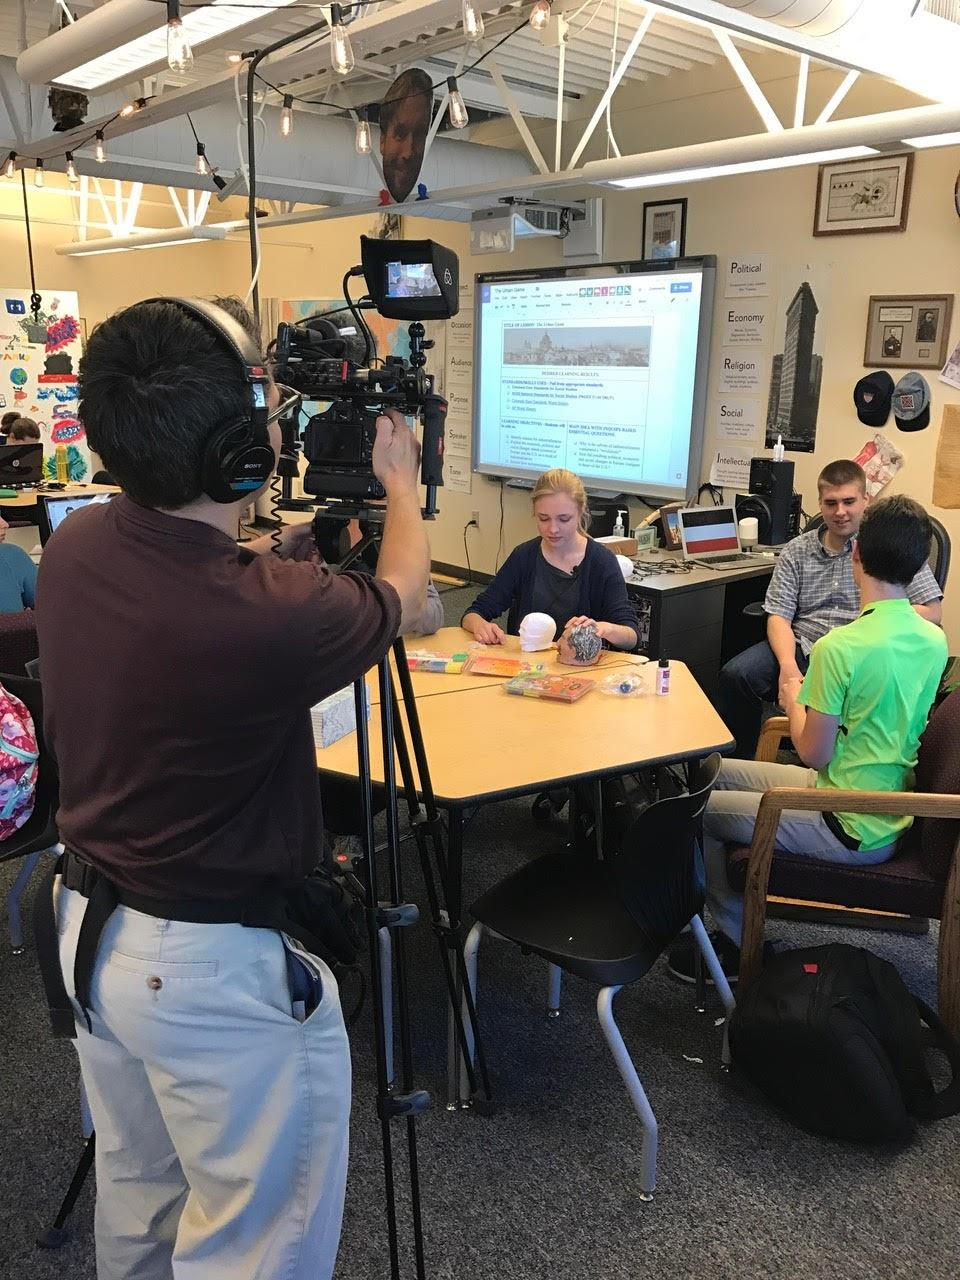 Channel 9 News films student working on VR